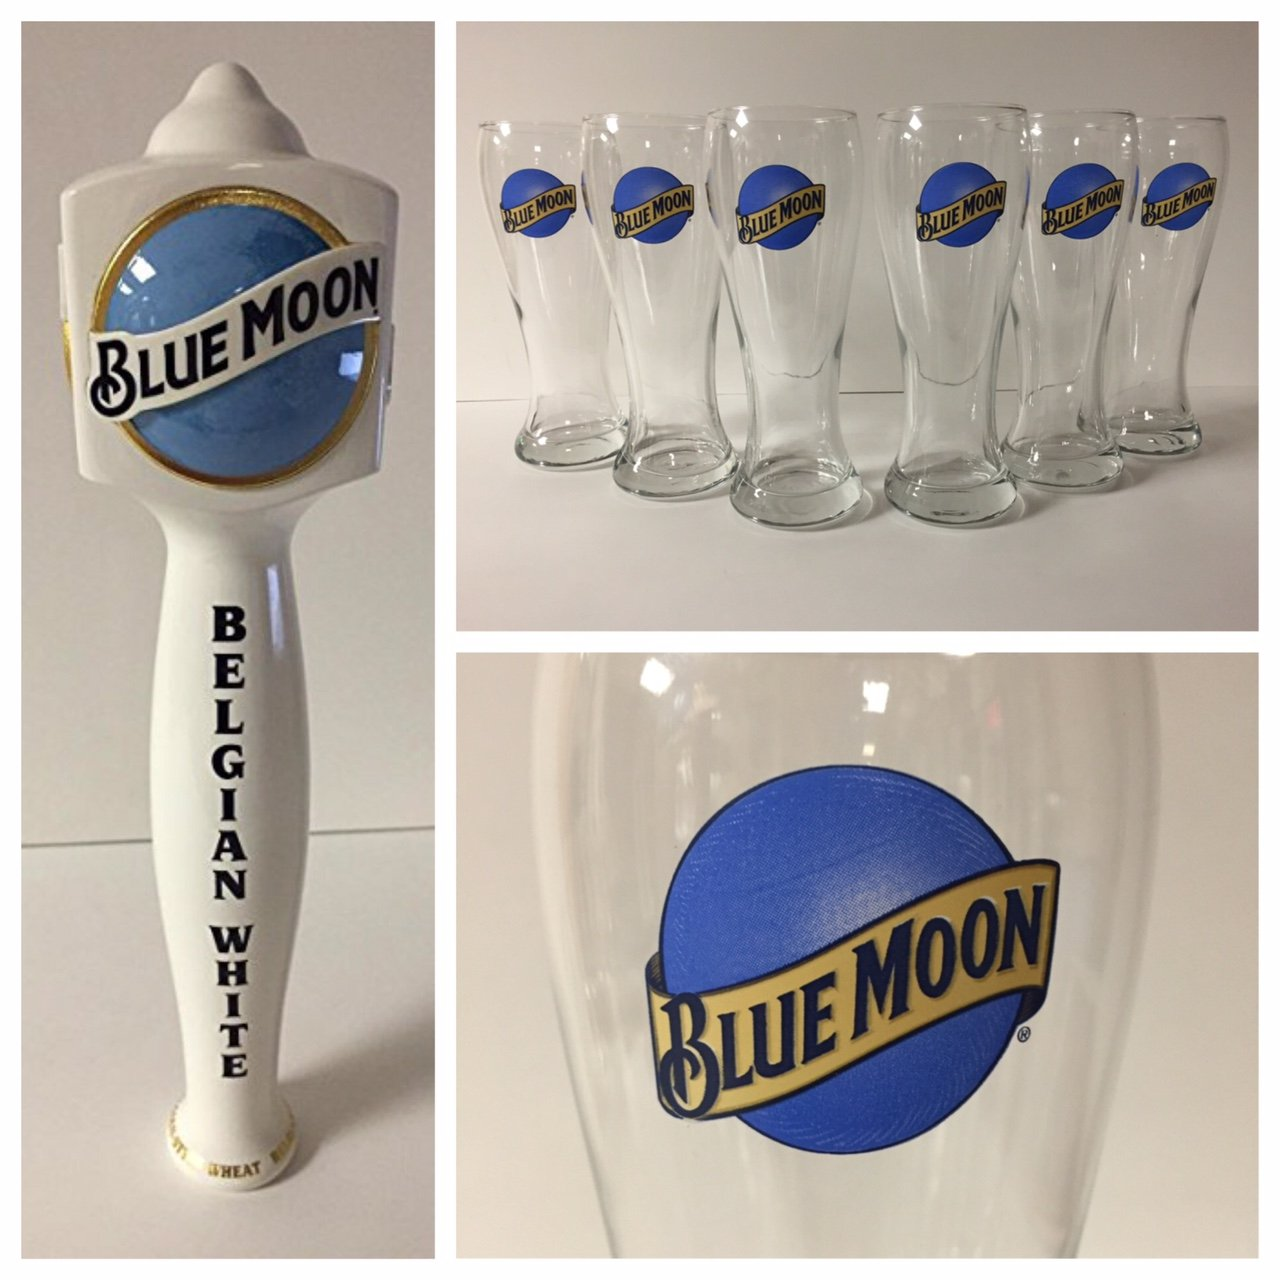 Blue Moon Brewing Co. Draft Kit - 6 16oz Glasses - 1 Tap by Blue Moon Brewing Co (Image #1)